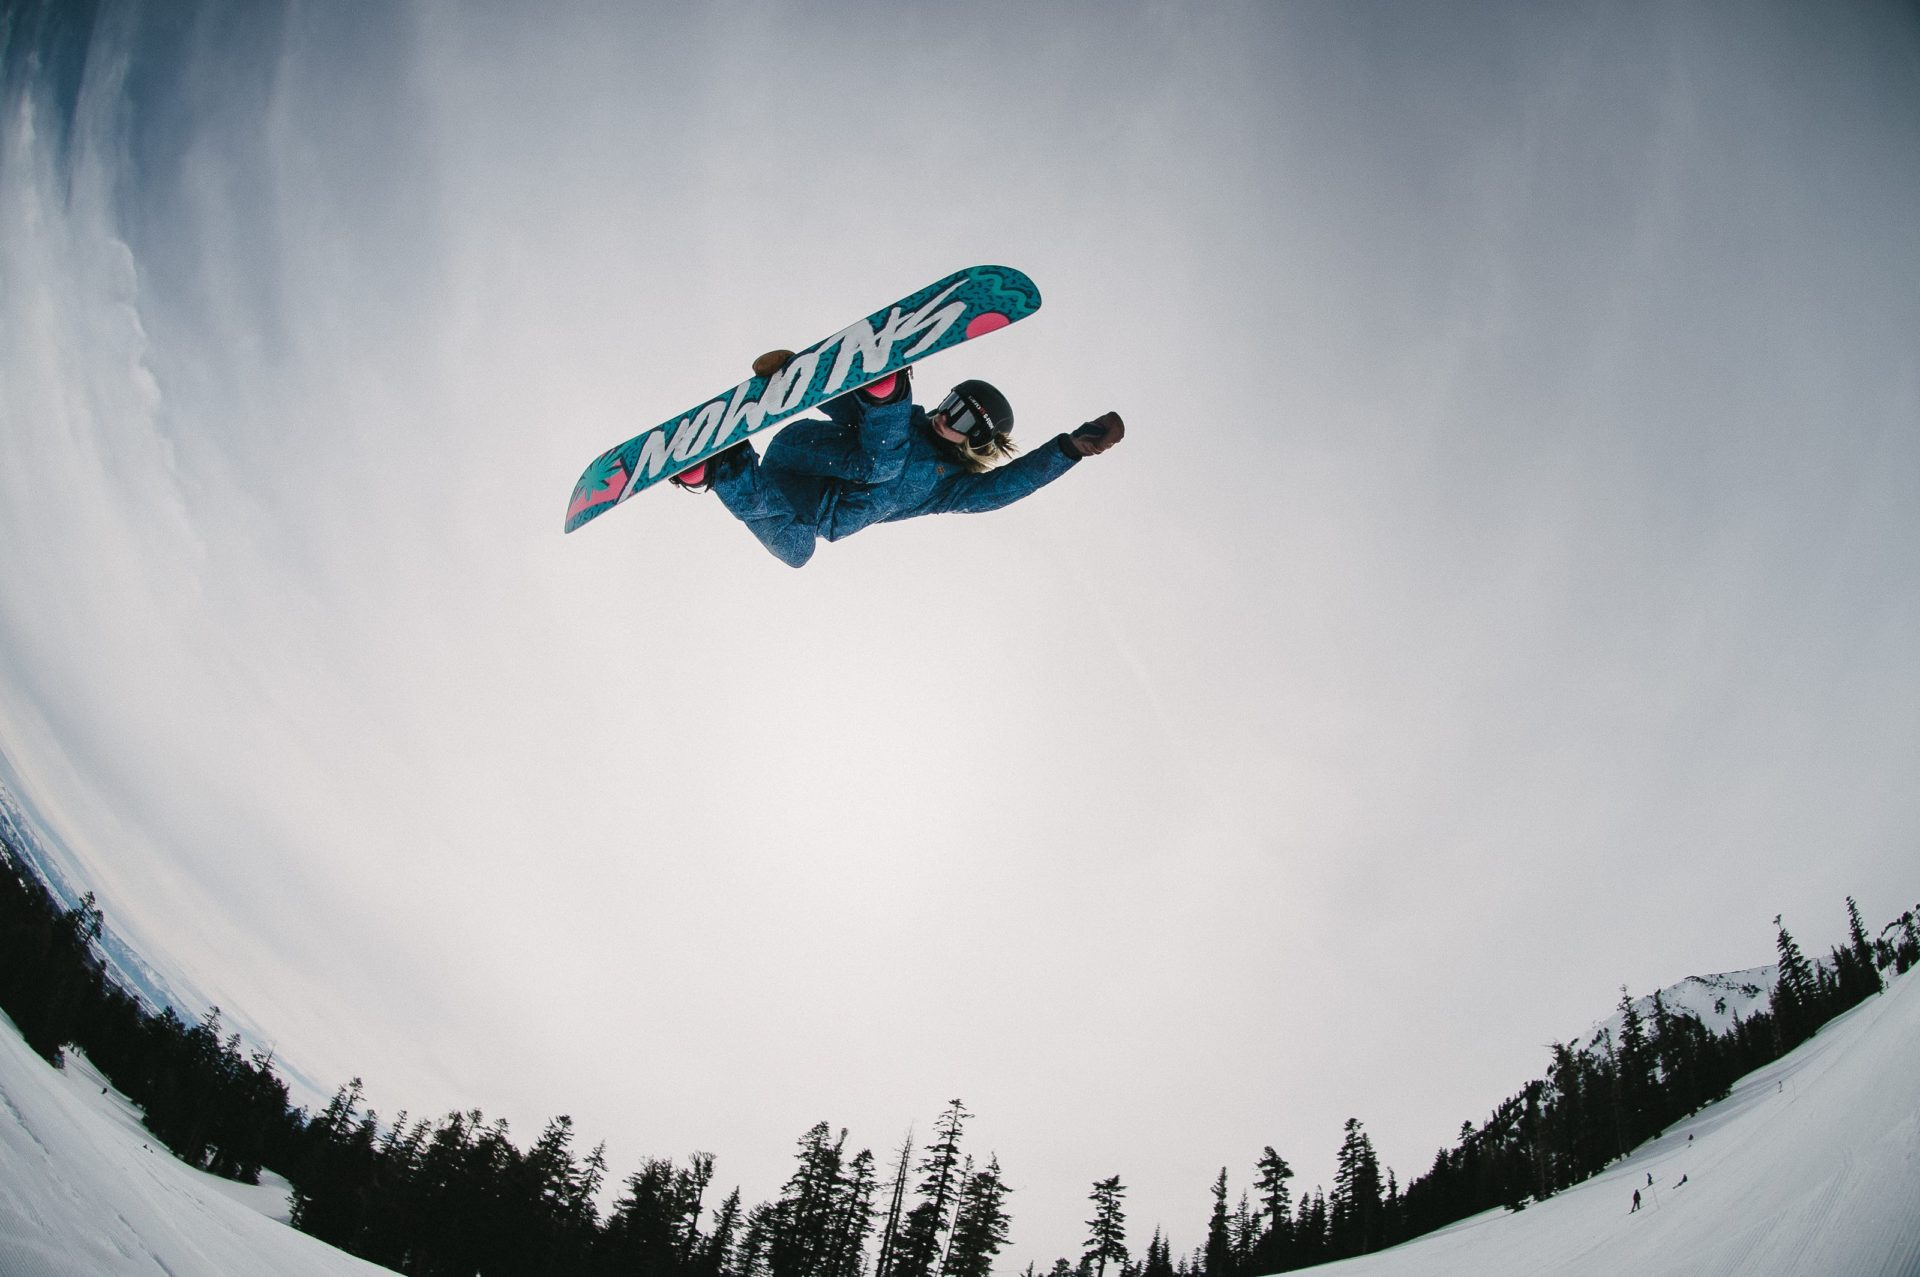 Catching some air on a snowboard